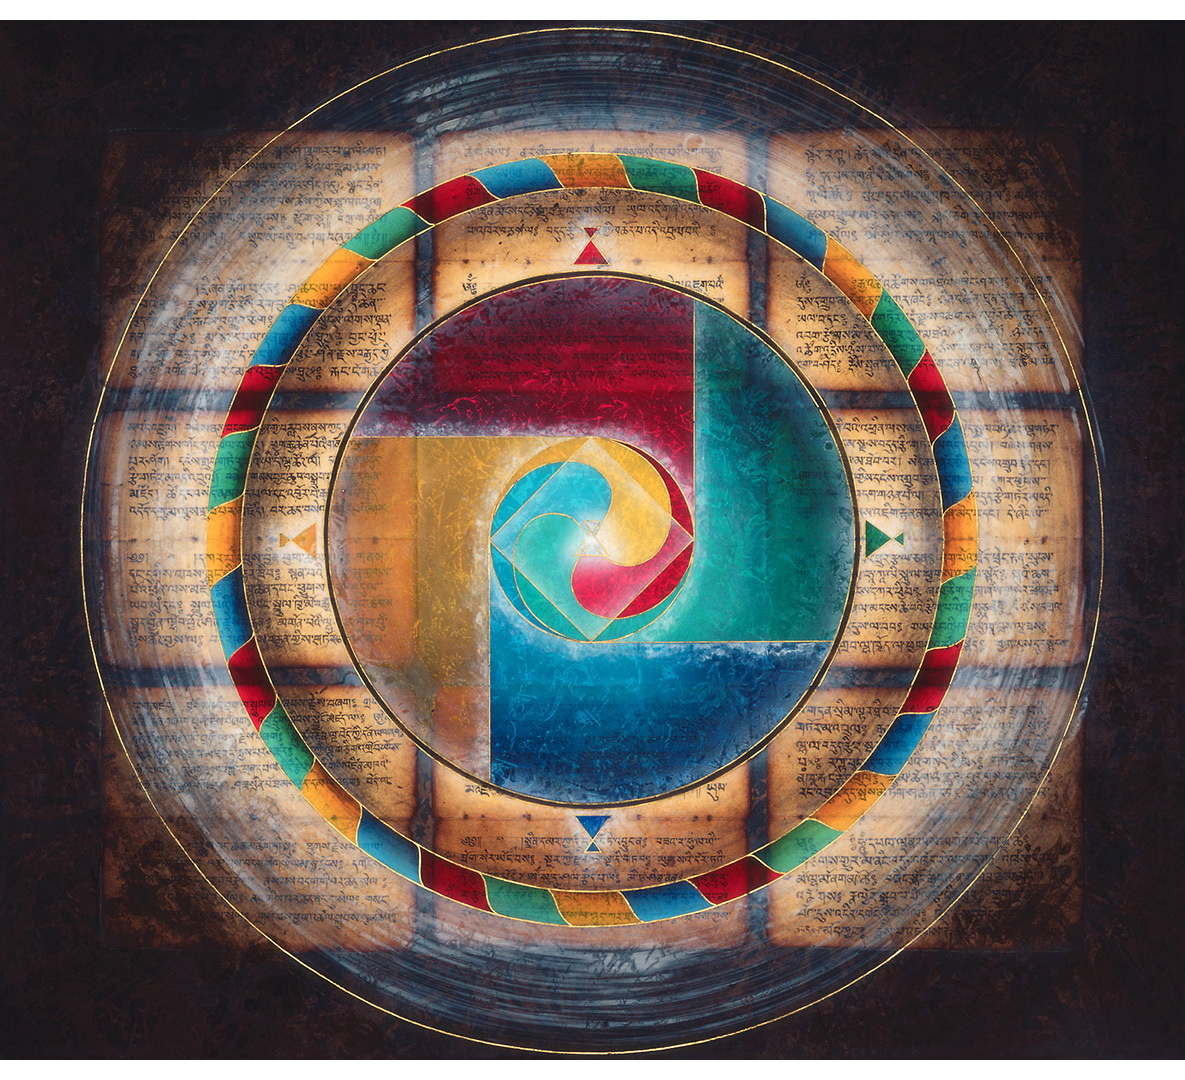 Tibetan Mandala with the Five Dhyani Buddhas